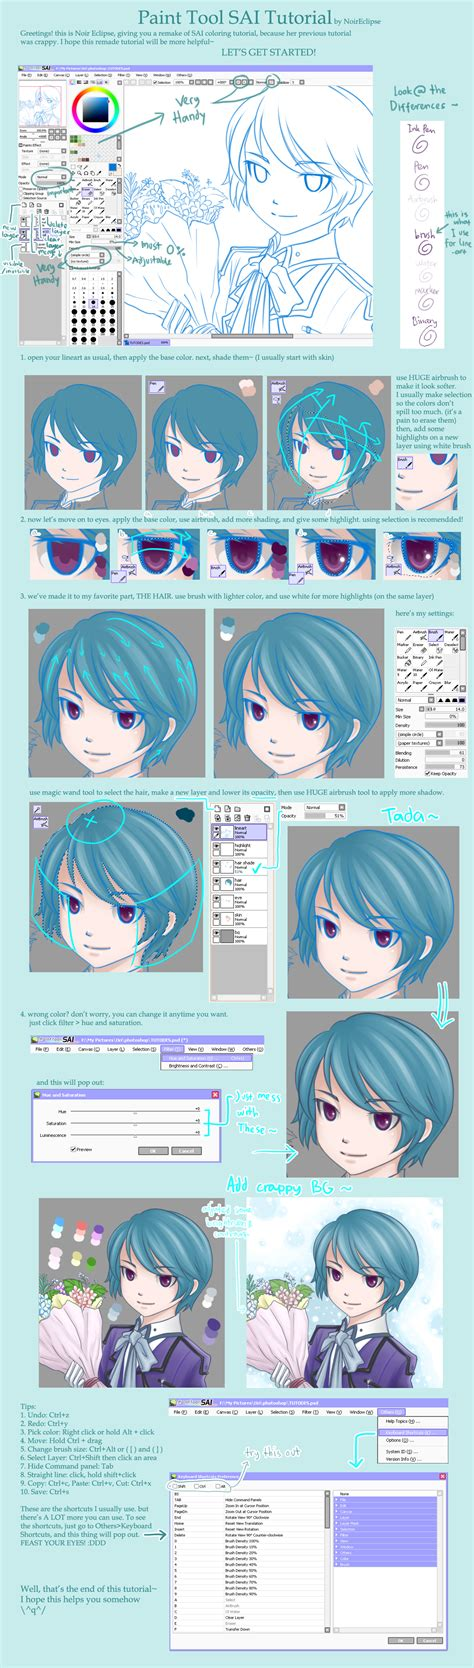 tutorial aplikasi paint tool sai paint tool sai tutorial by noireclipse on deviantart